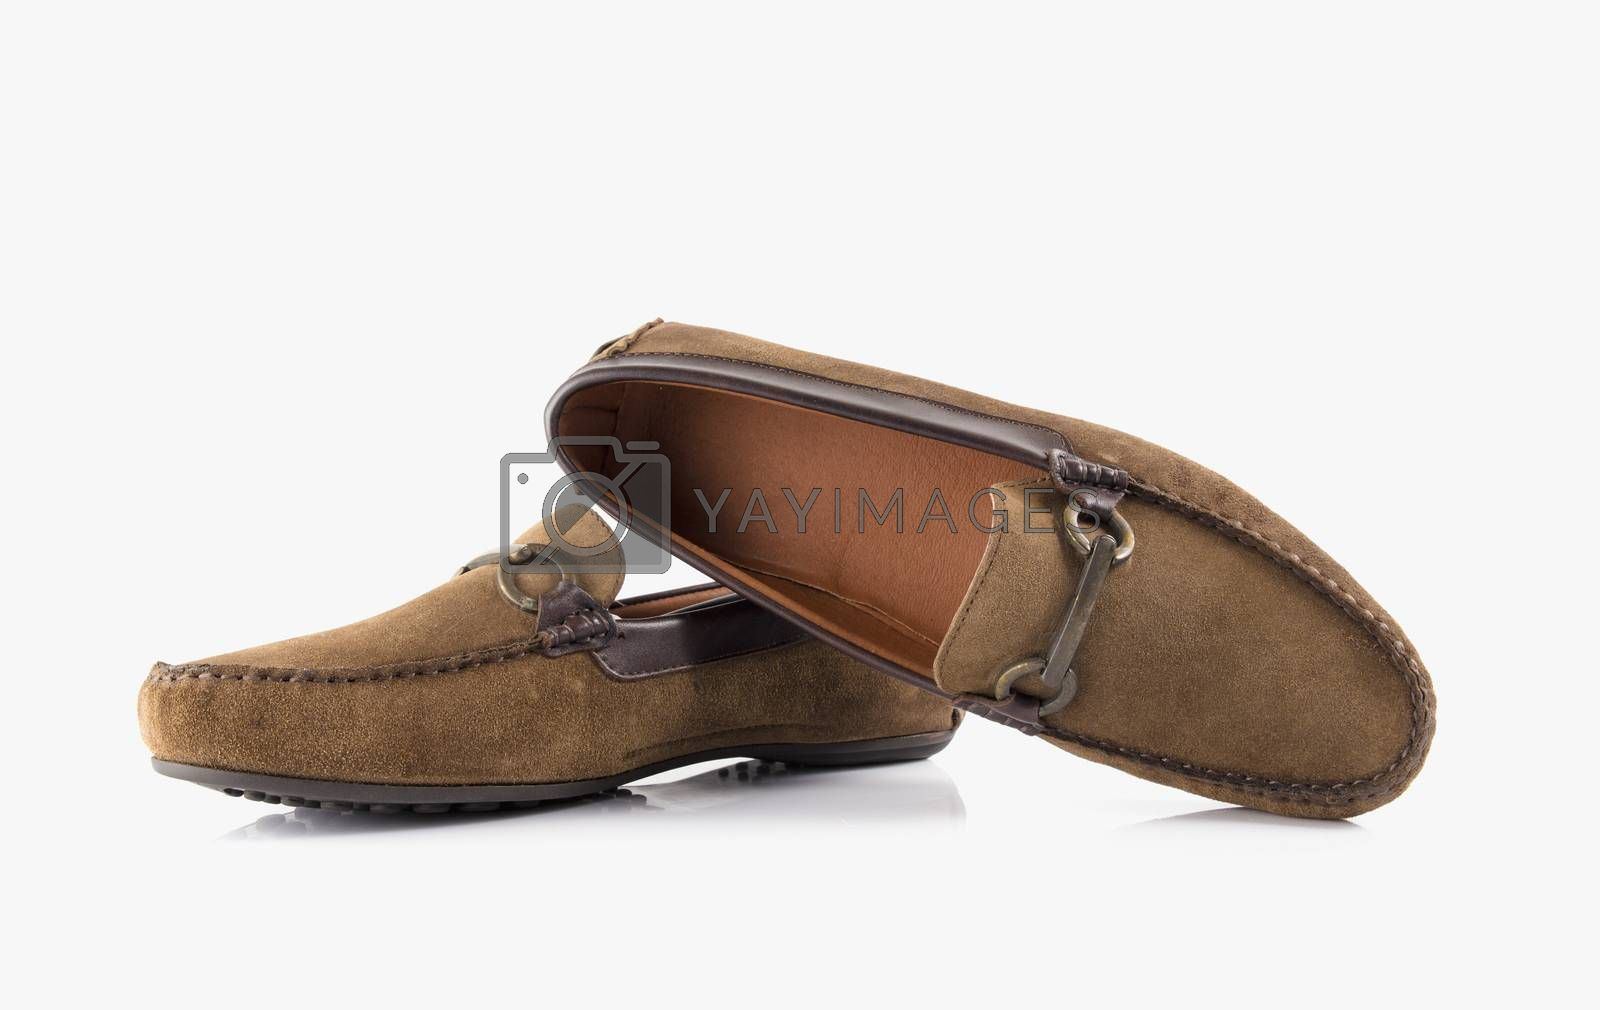 Male brown leather shoes on white background, isolated product.